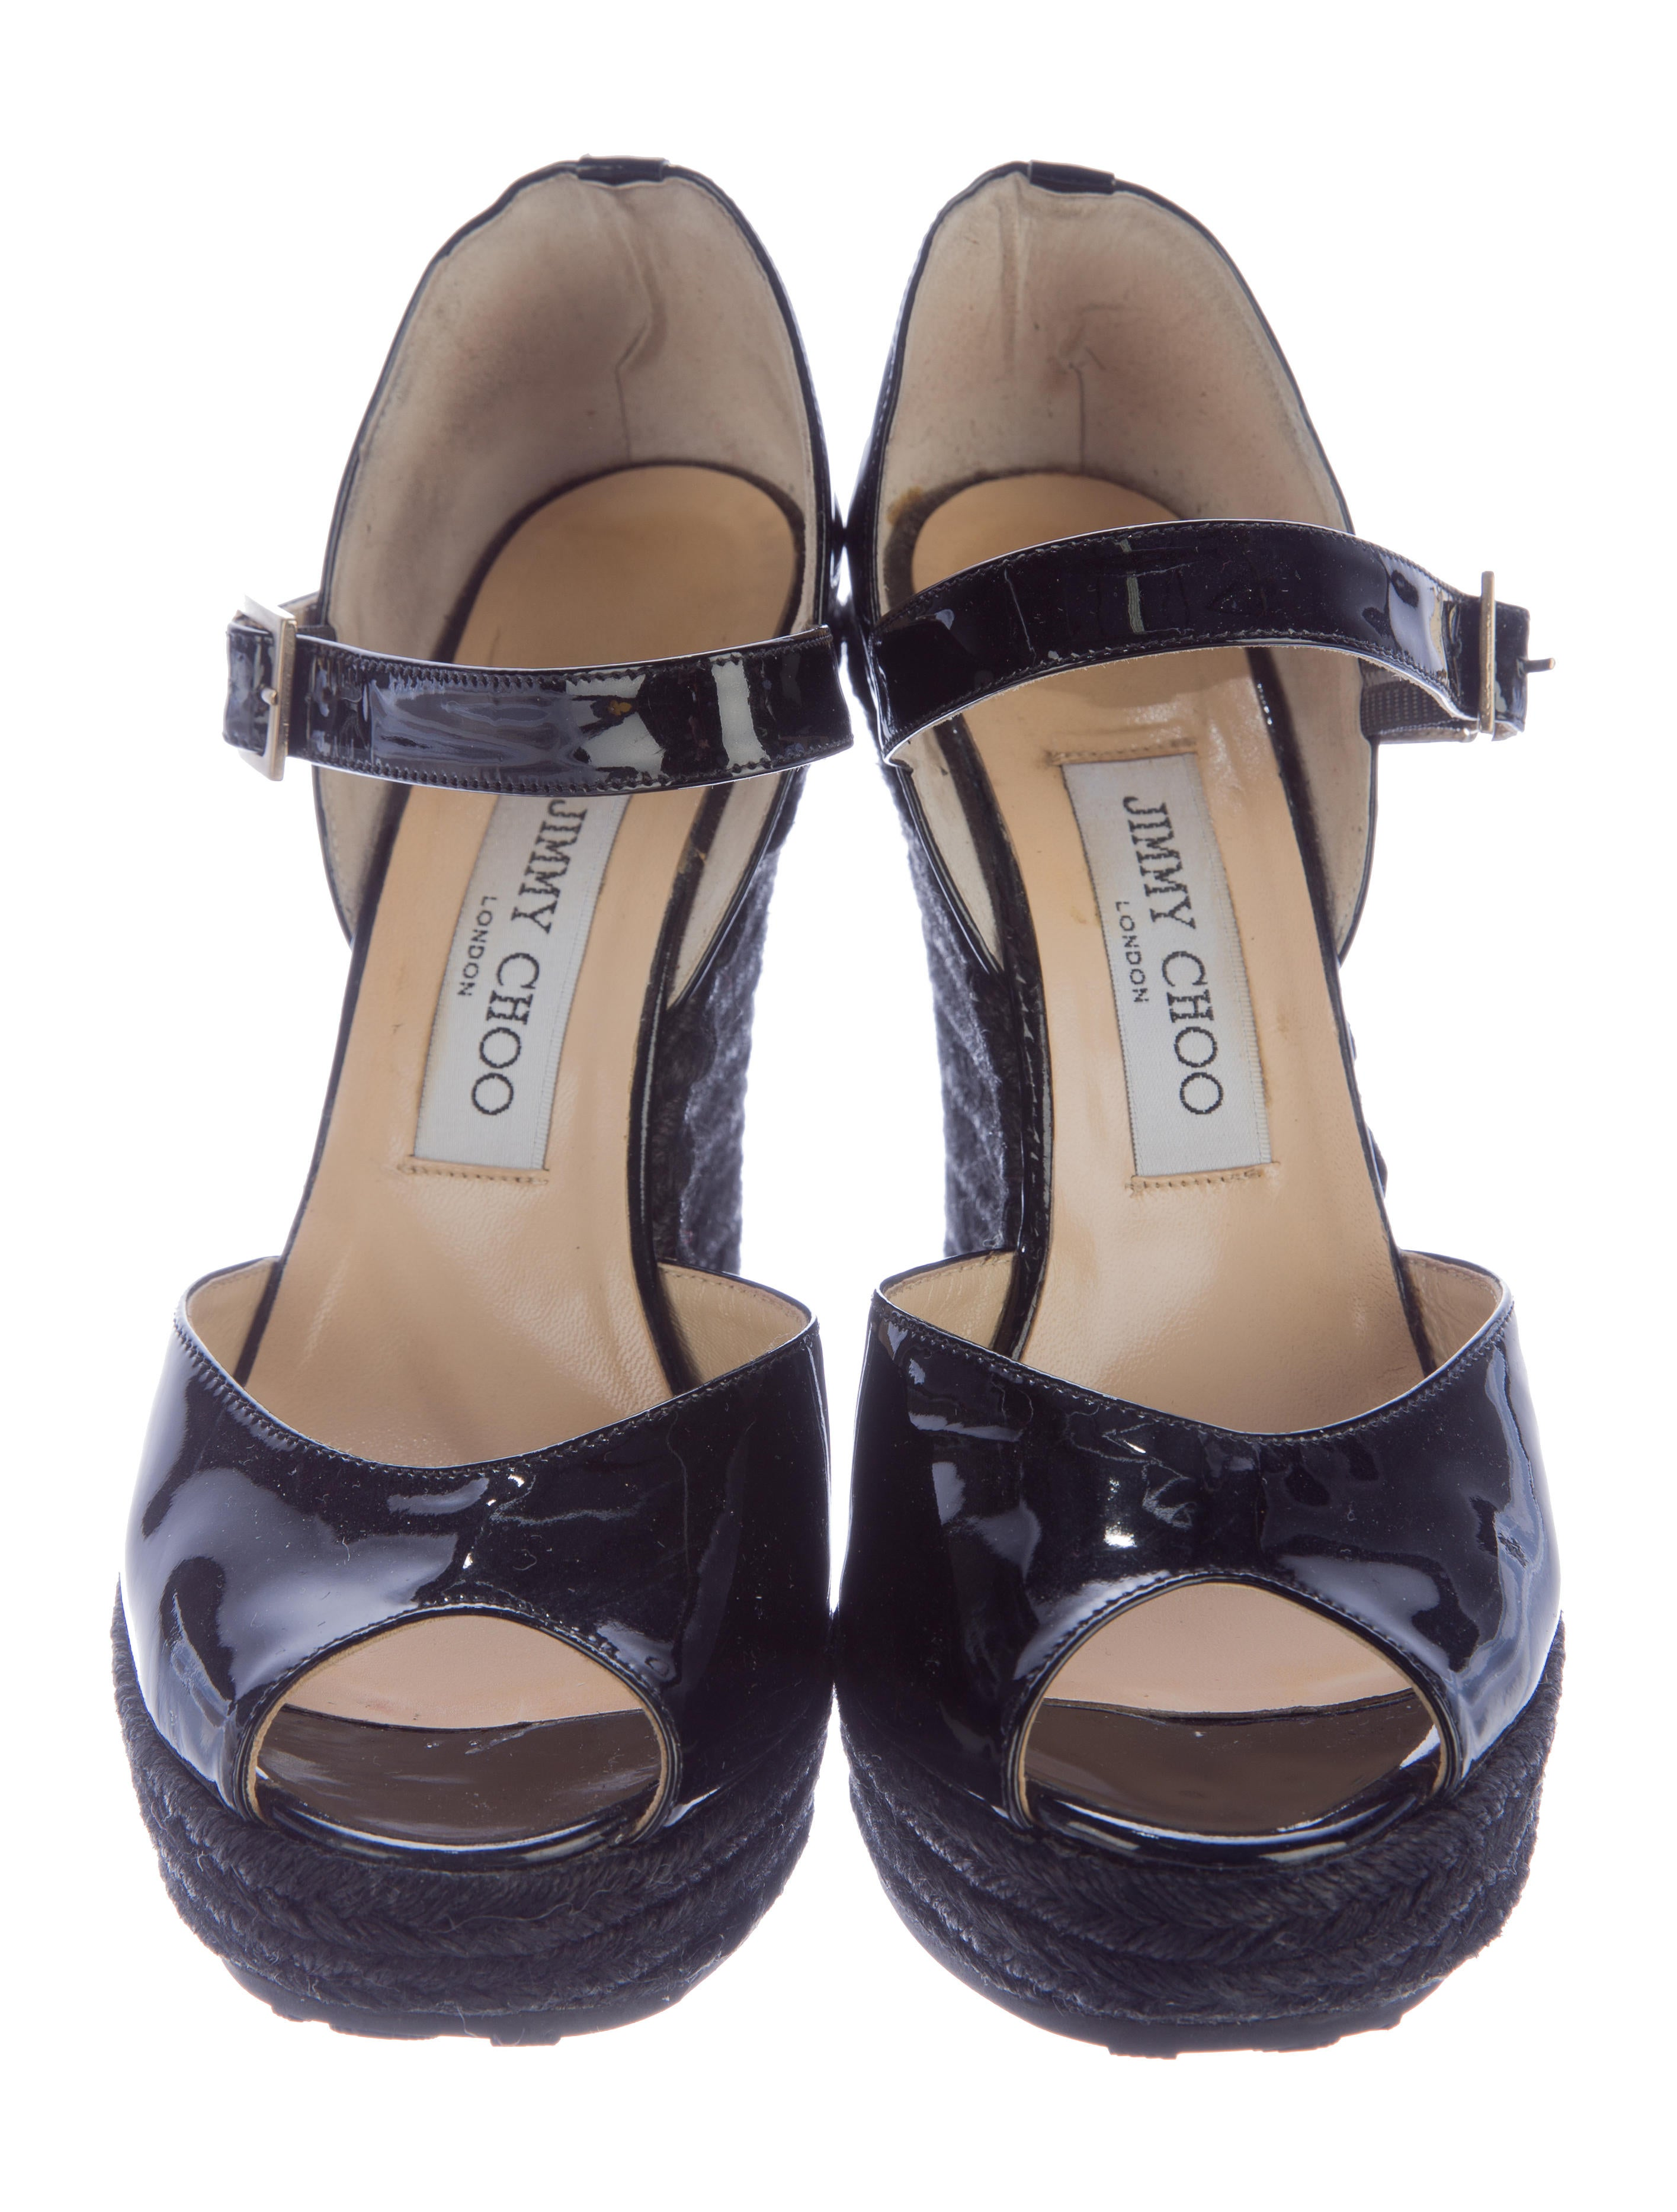 jimmy choo patent leather wedge sandals shoes jim51862